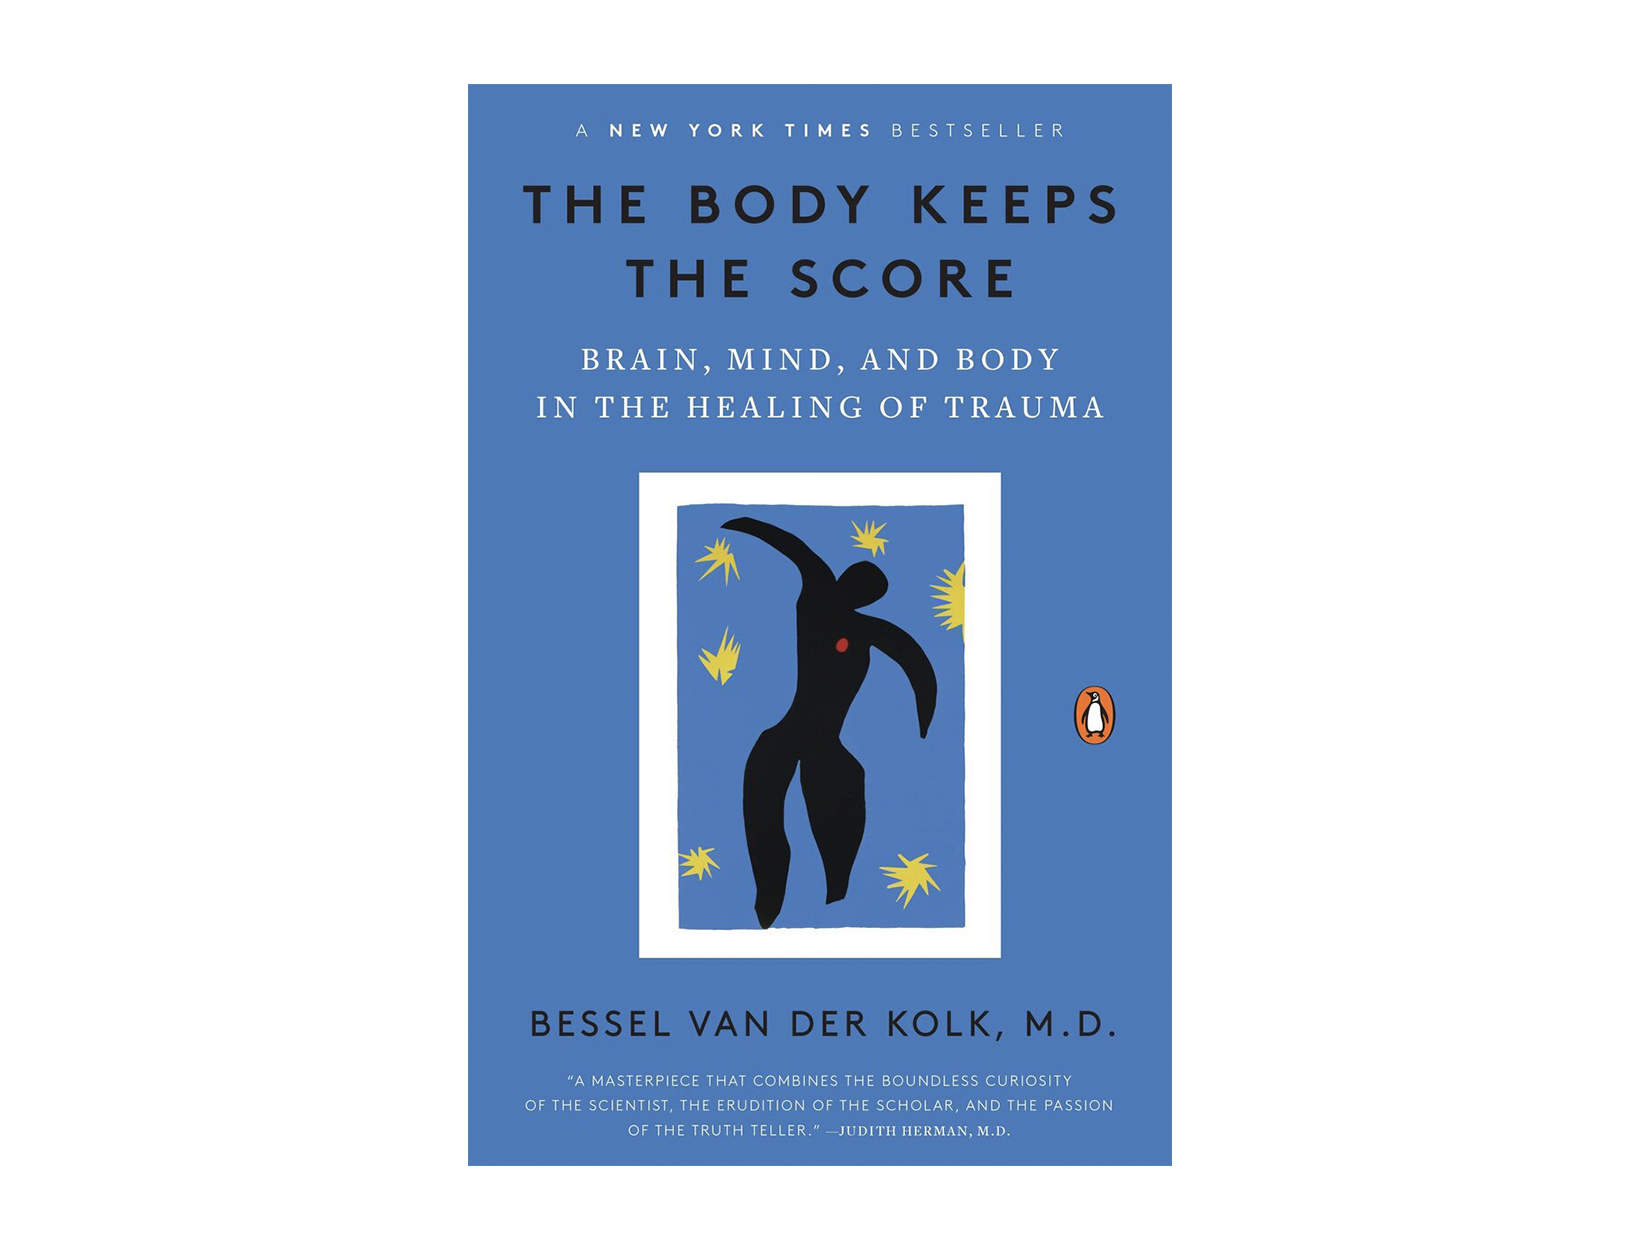 <em>The Body Keeps the Score</em> by Bessel van der Kolk, MD